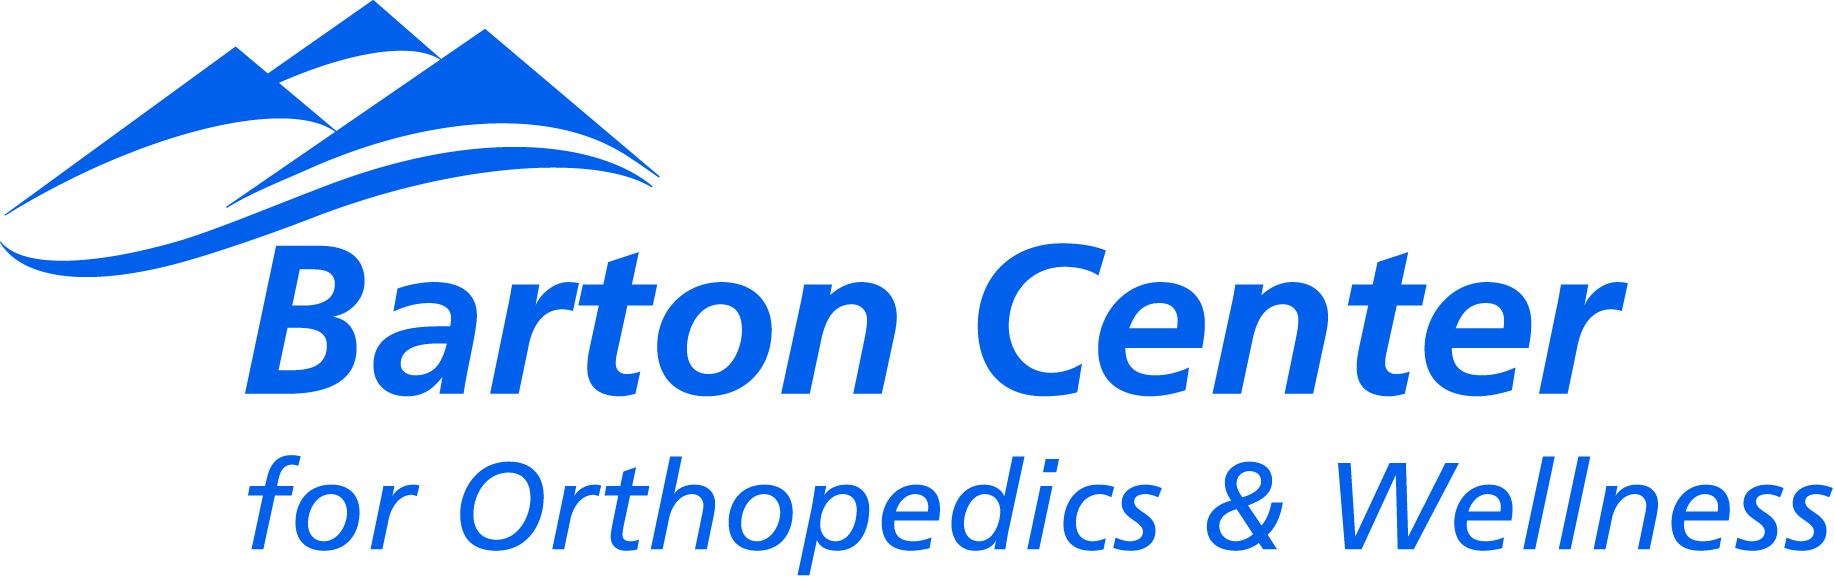 Barton Center for Orthopedics & Wellness